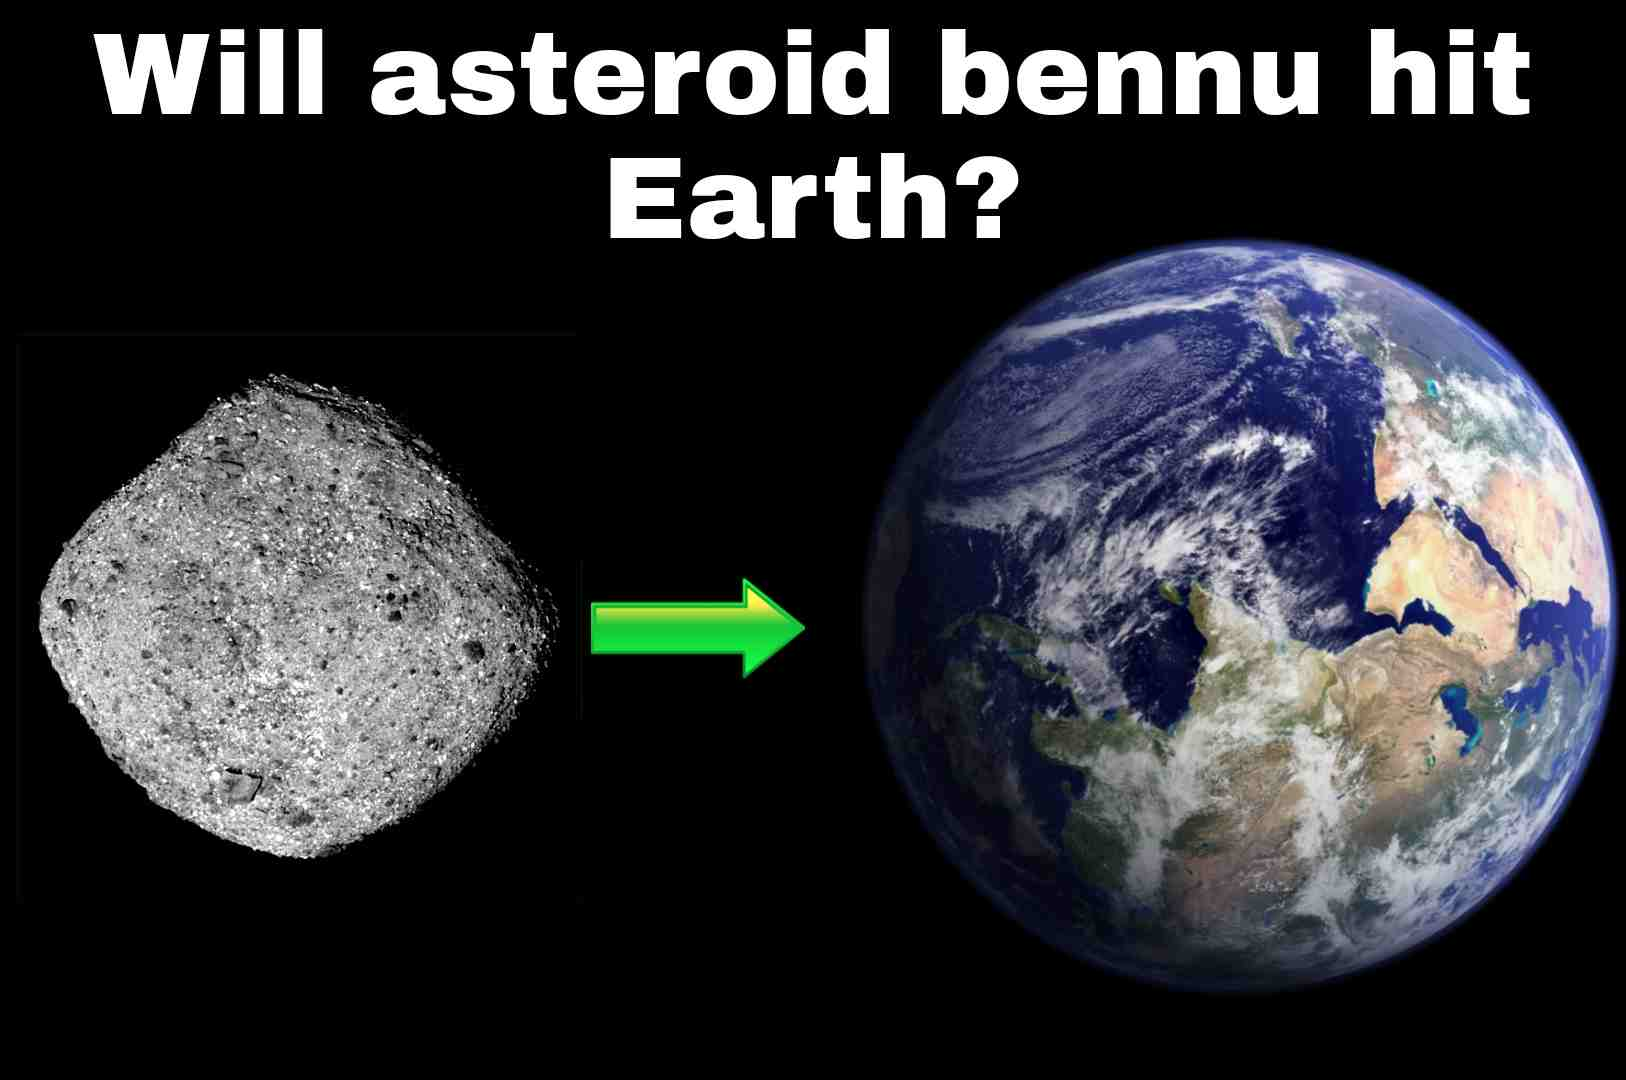 When will asteroid bennu hit Earth?